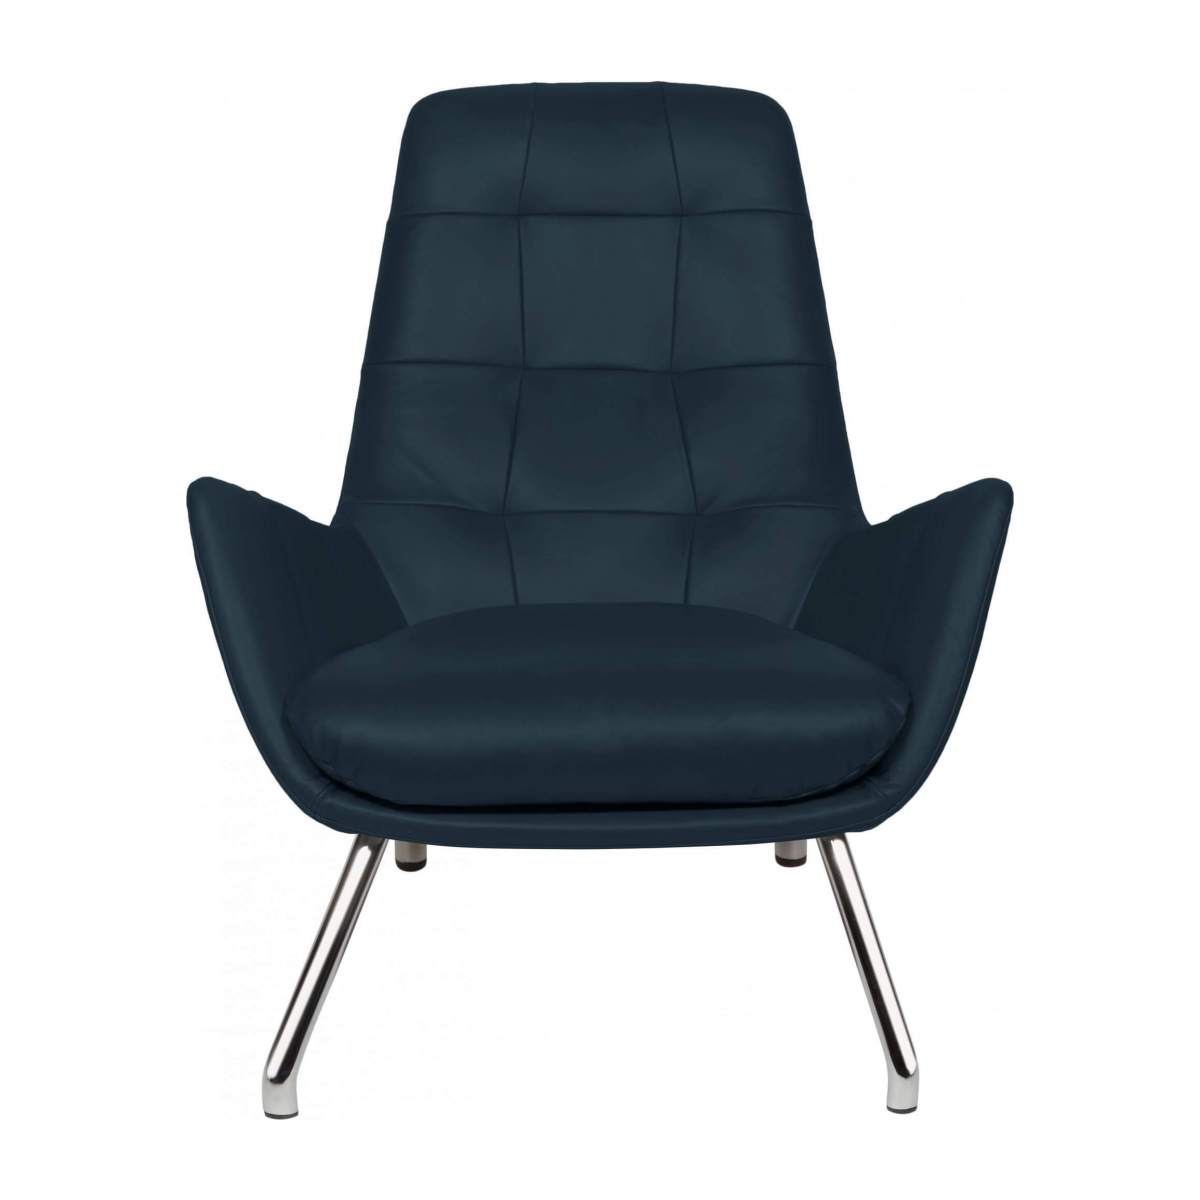 Armchair in Vintage aniline leather, denim blue with chromed metal legs n°1